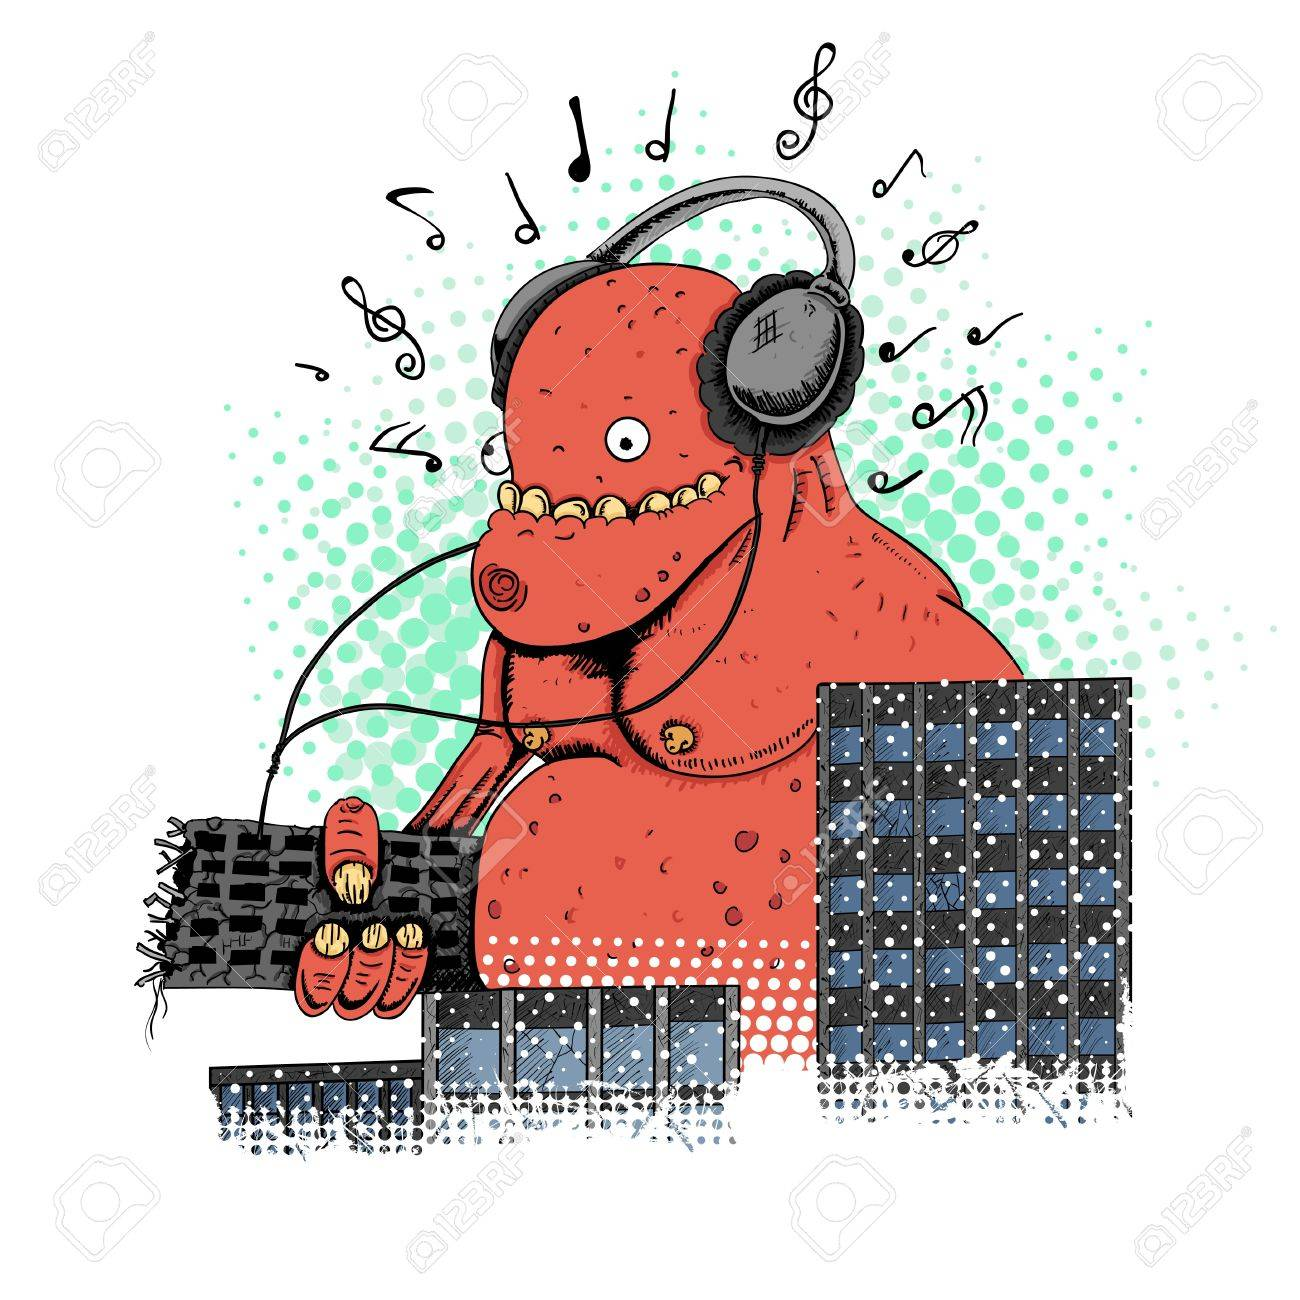 Monster in the city crashing house and listening music Stock Vector - 20721665